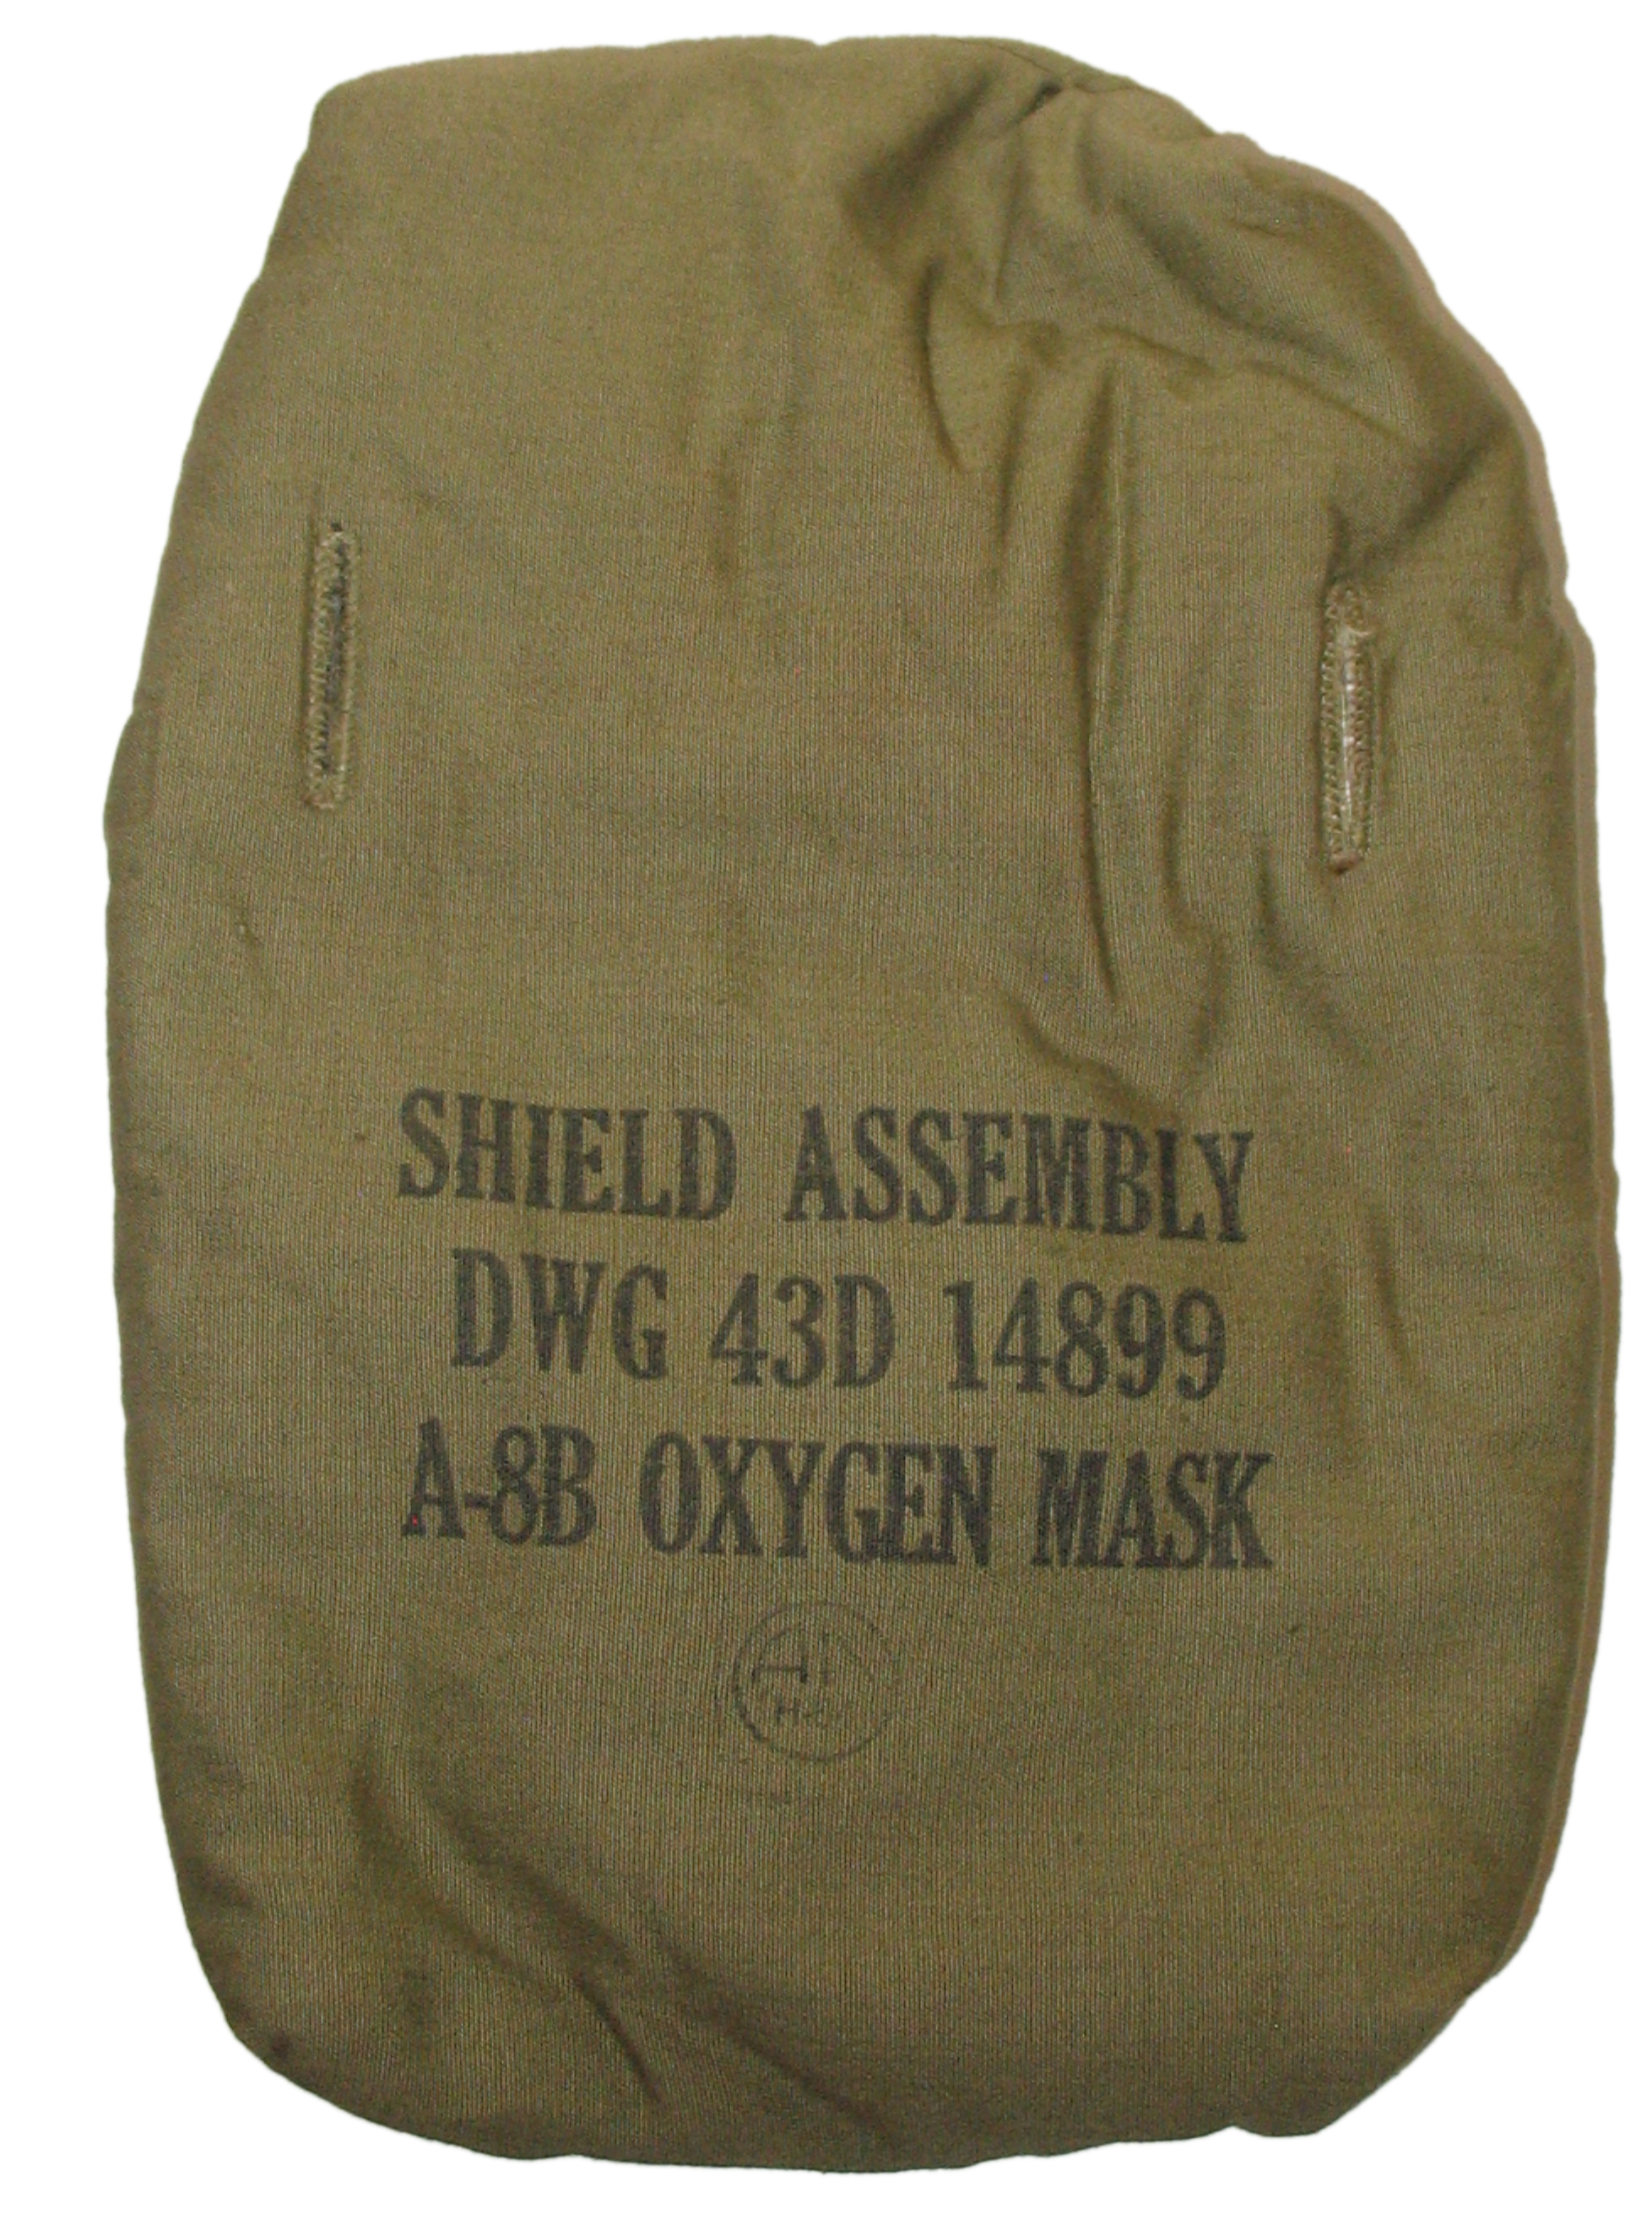 A-8B mask shield assembly